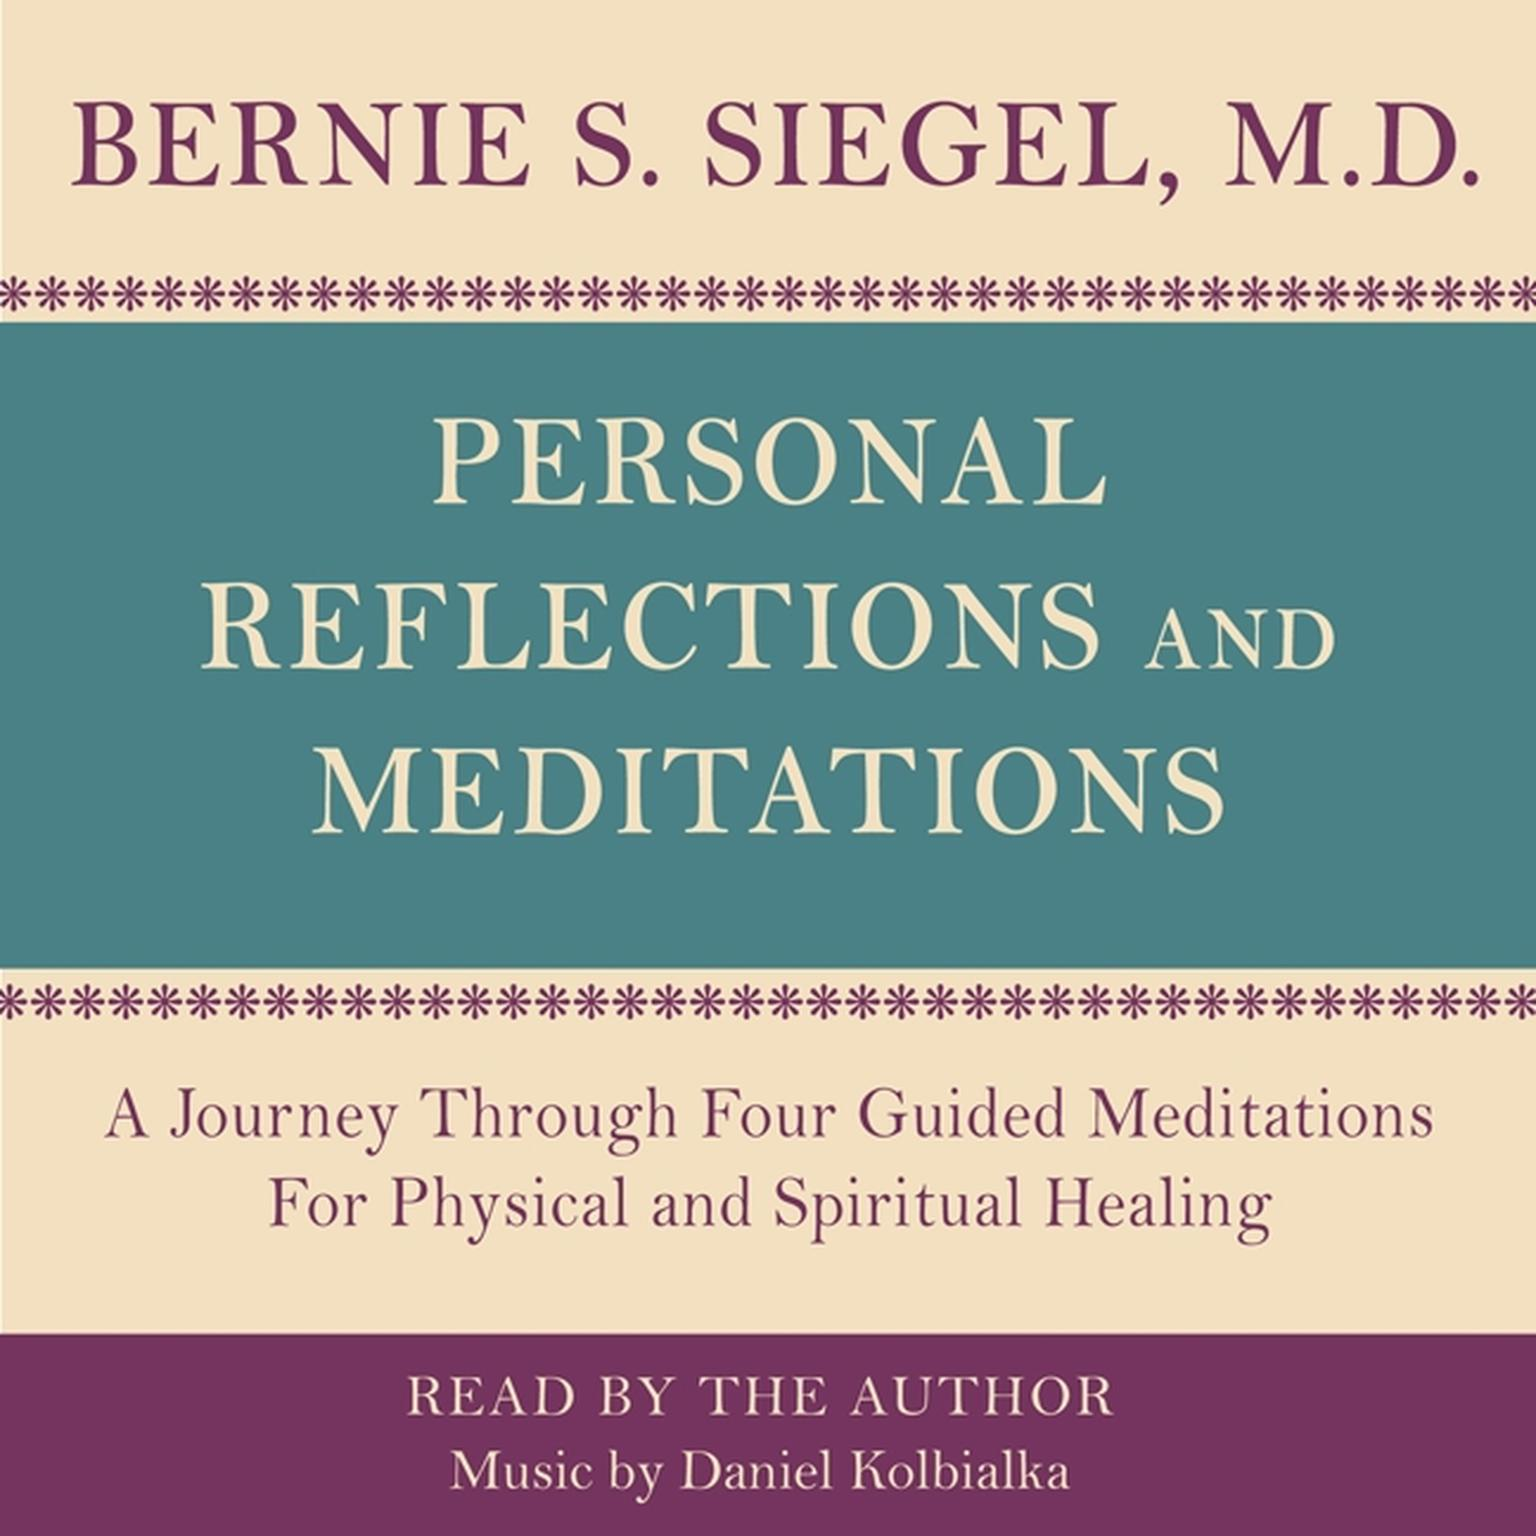 Printable Personal Reflections & Meditations: A Journey through Four Guided Meditations for Physical and Spiritual Healing Audiobook Cover Art